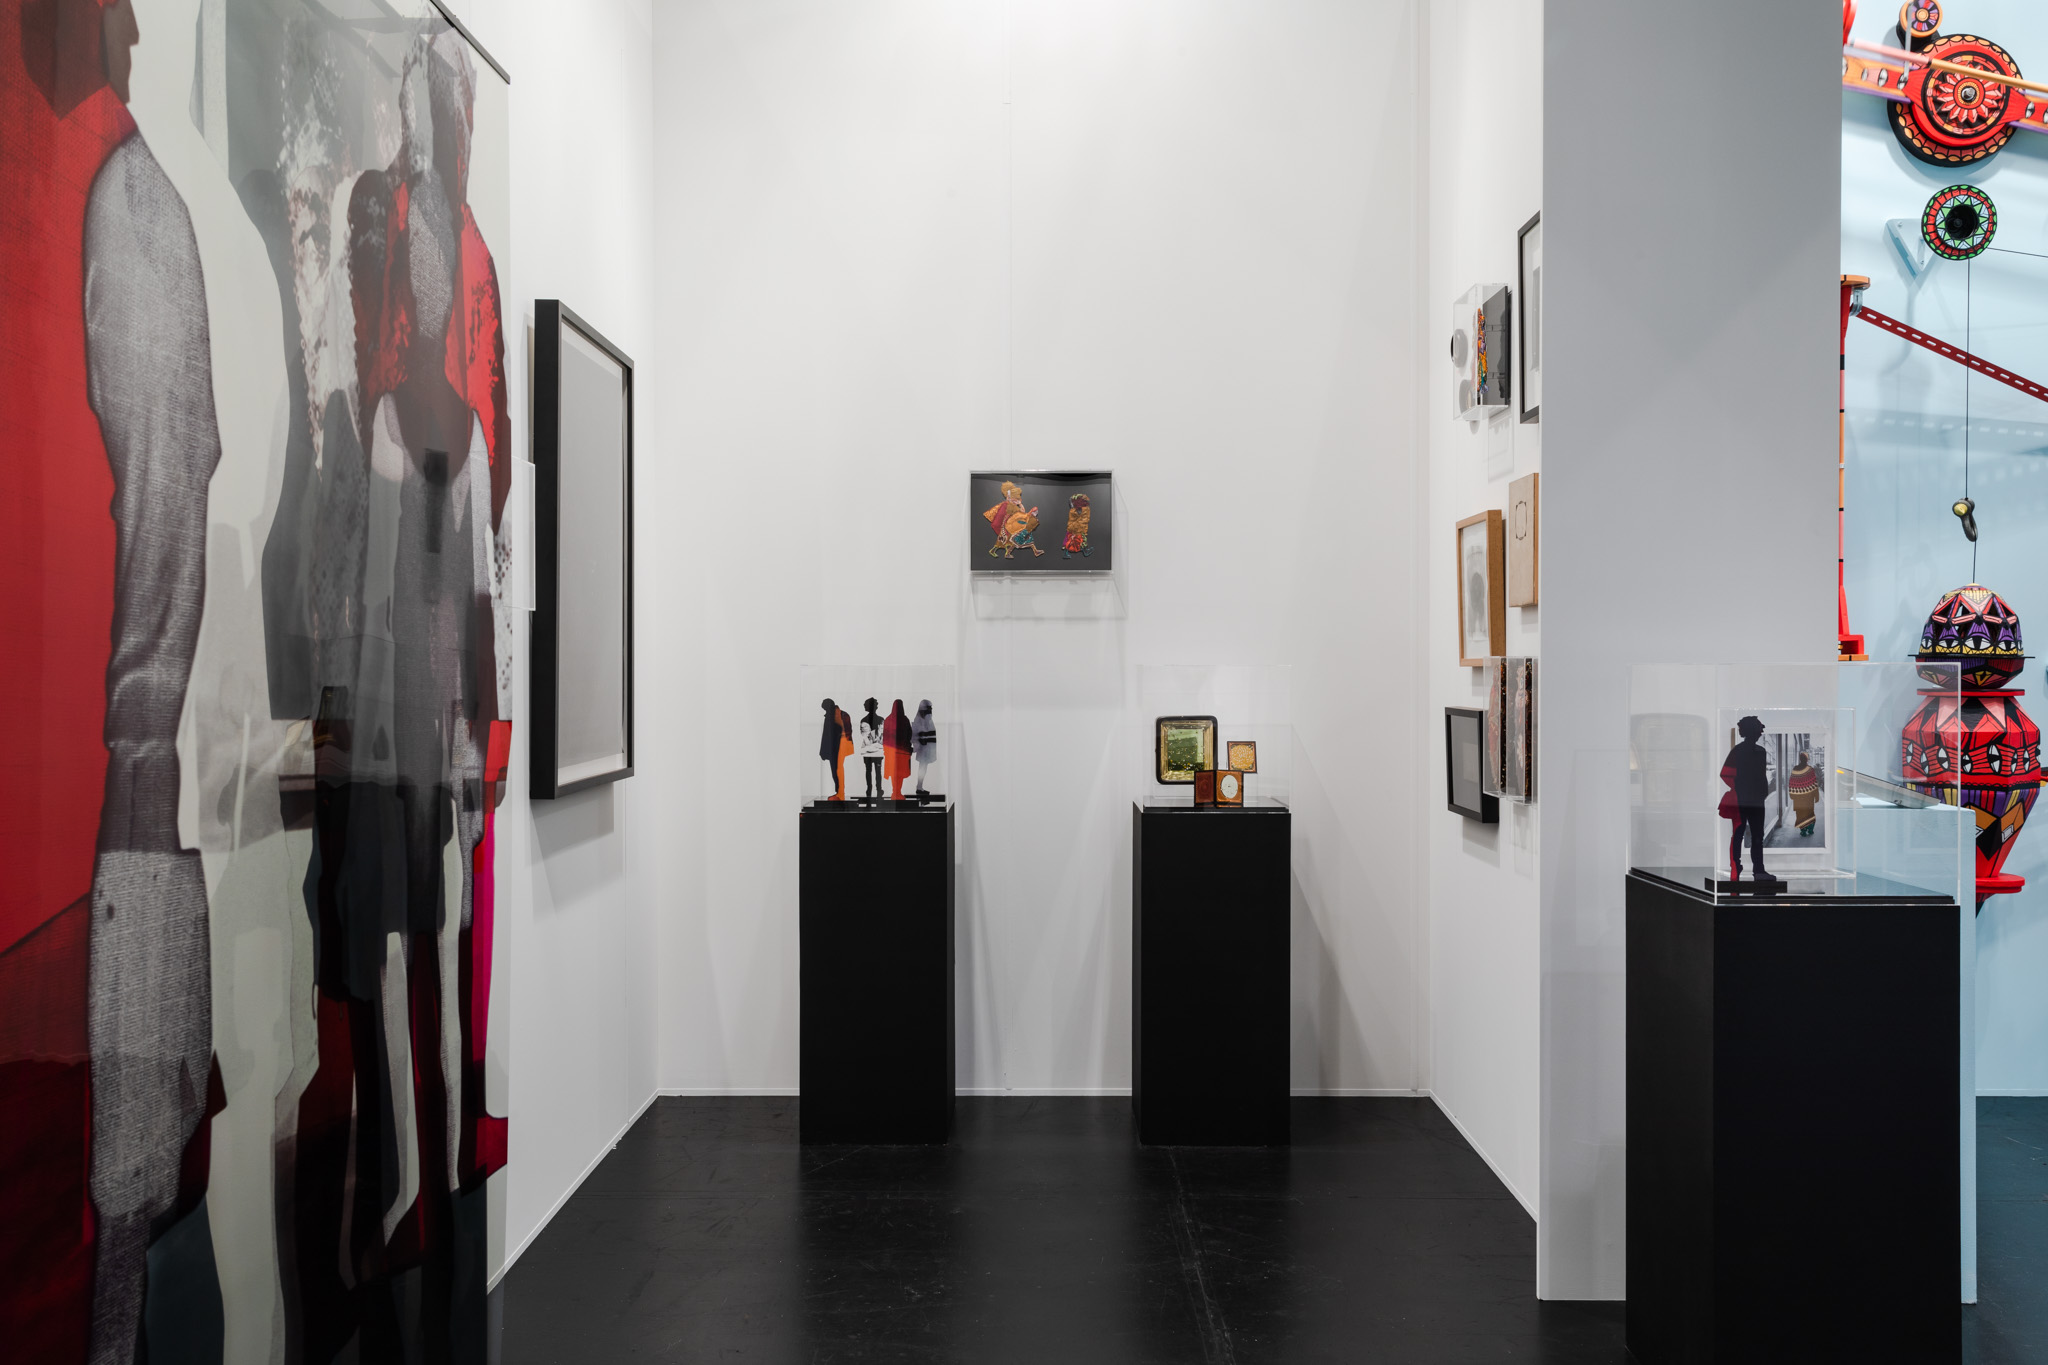 OHouseStudios_SydContemporary_13_09_18_Credit_Jacquie_Manning-5.jpg